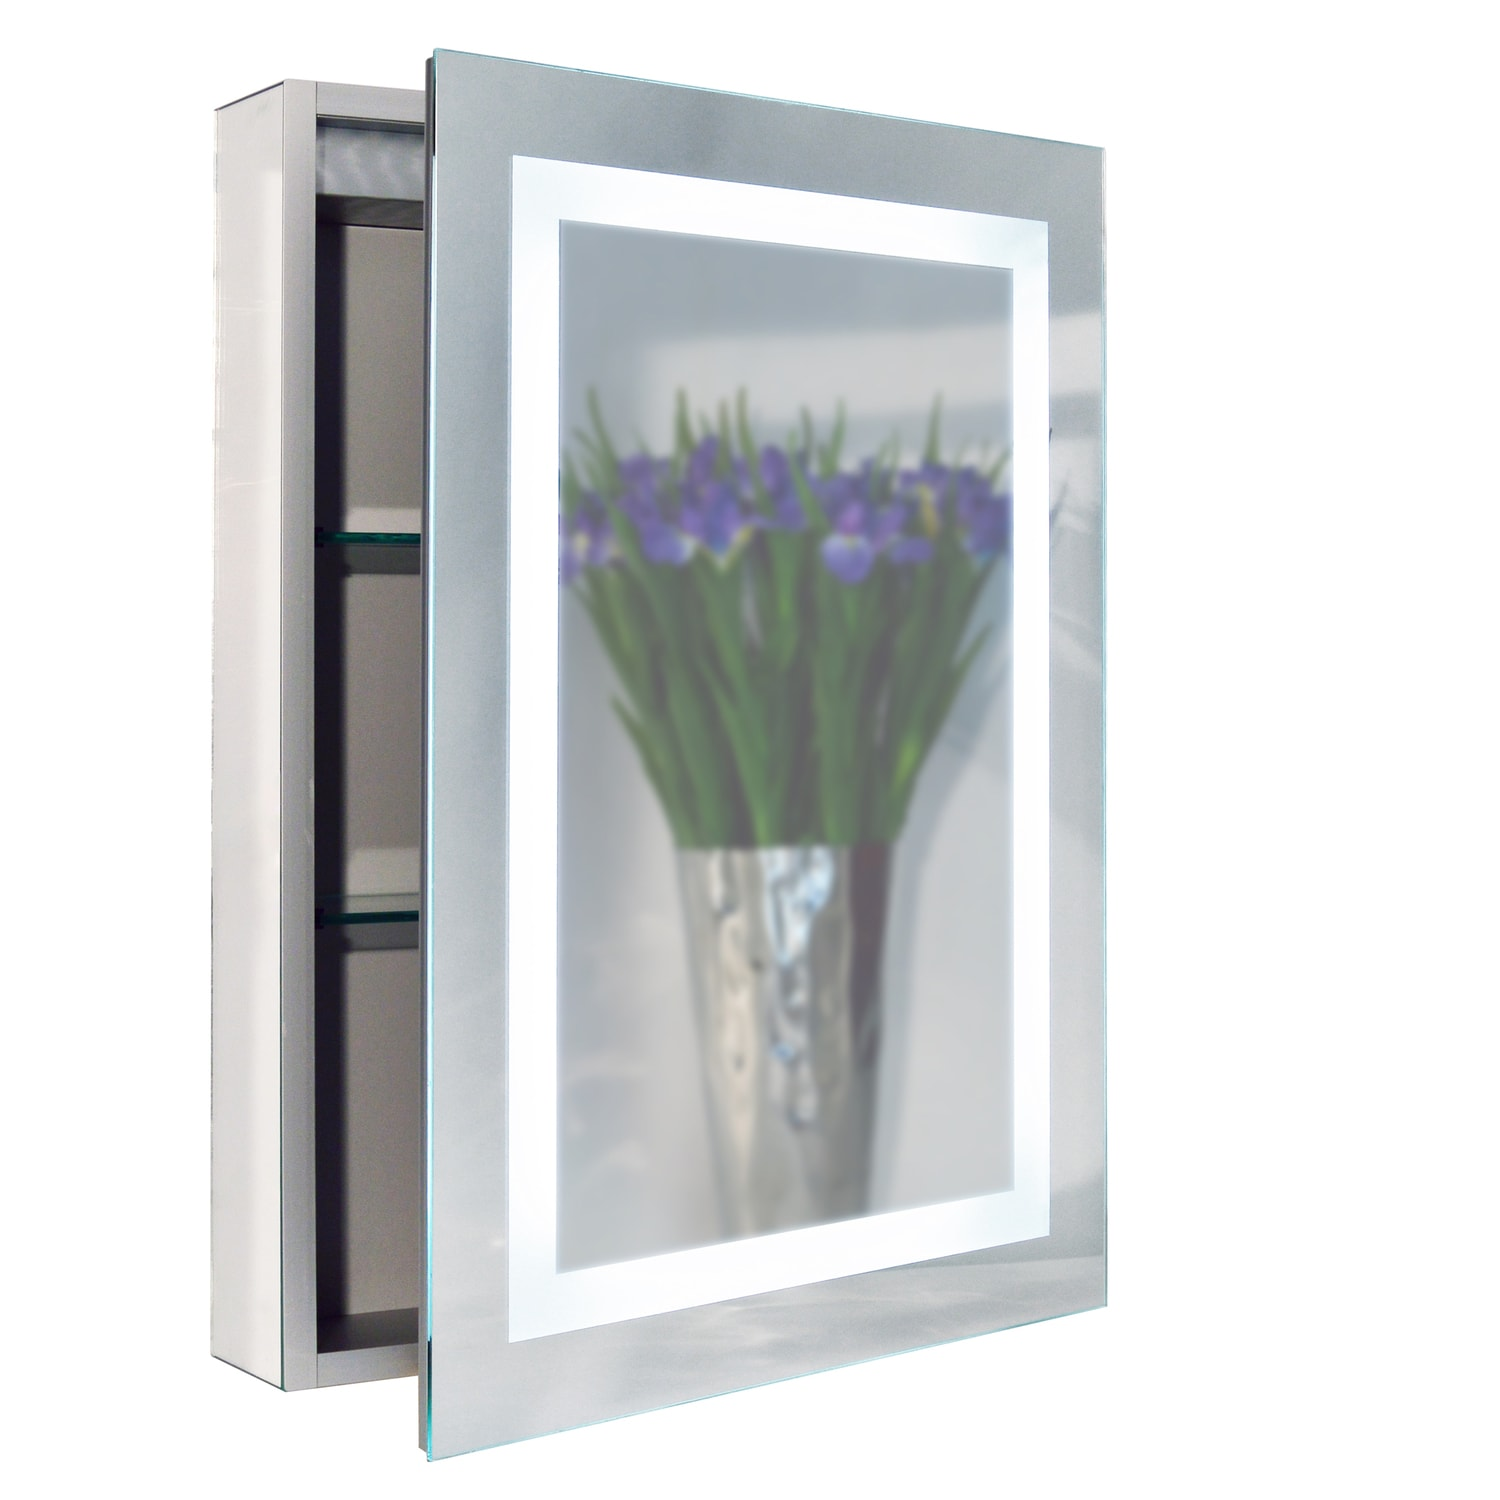 "Dainolite Lighted Medicine Cabinet, 20"" x 28"" - Silver"